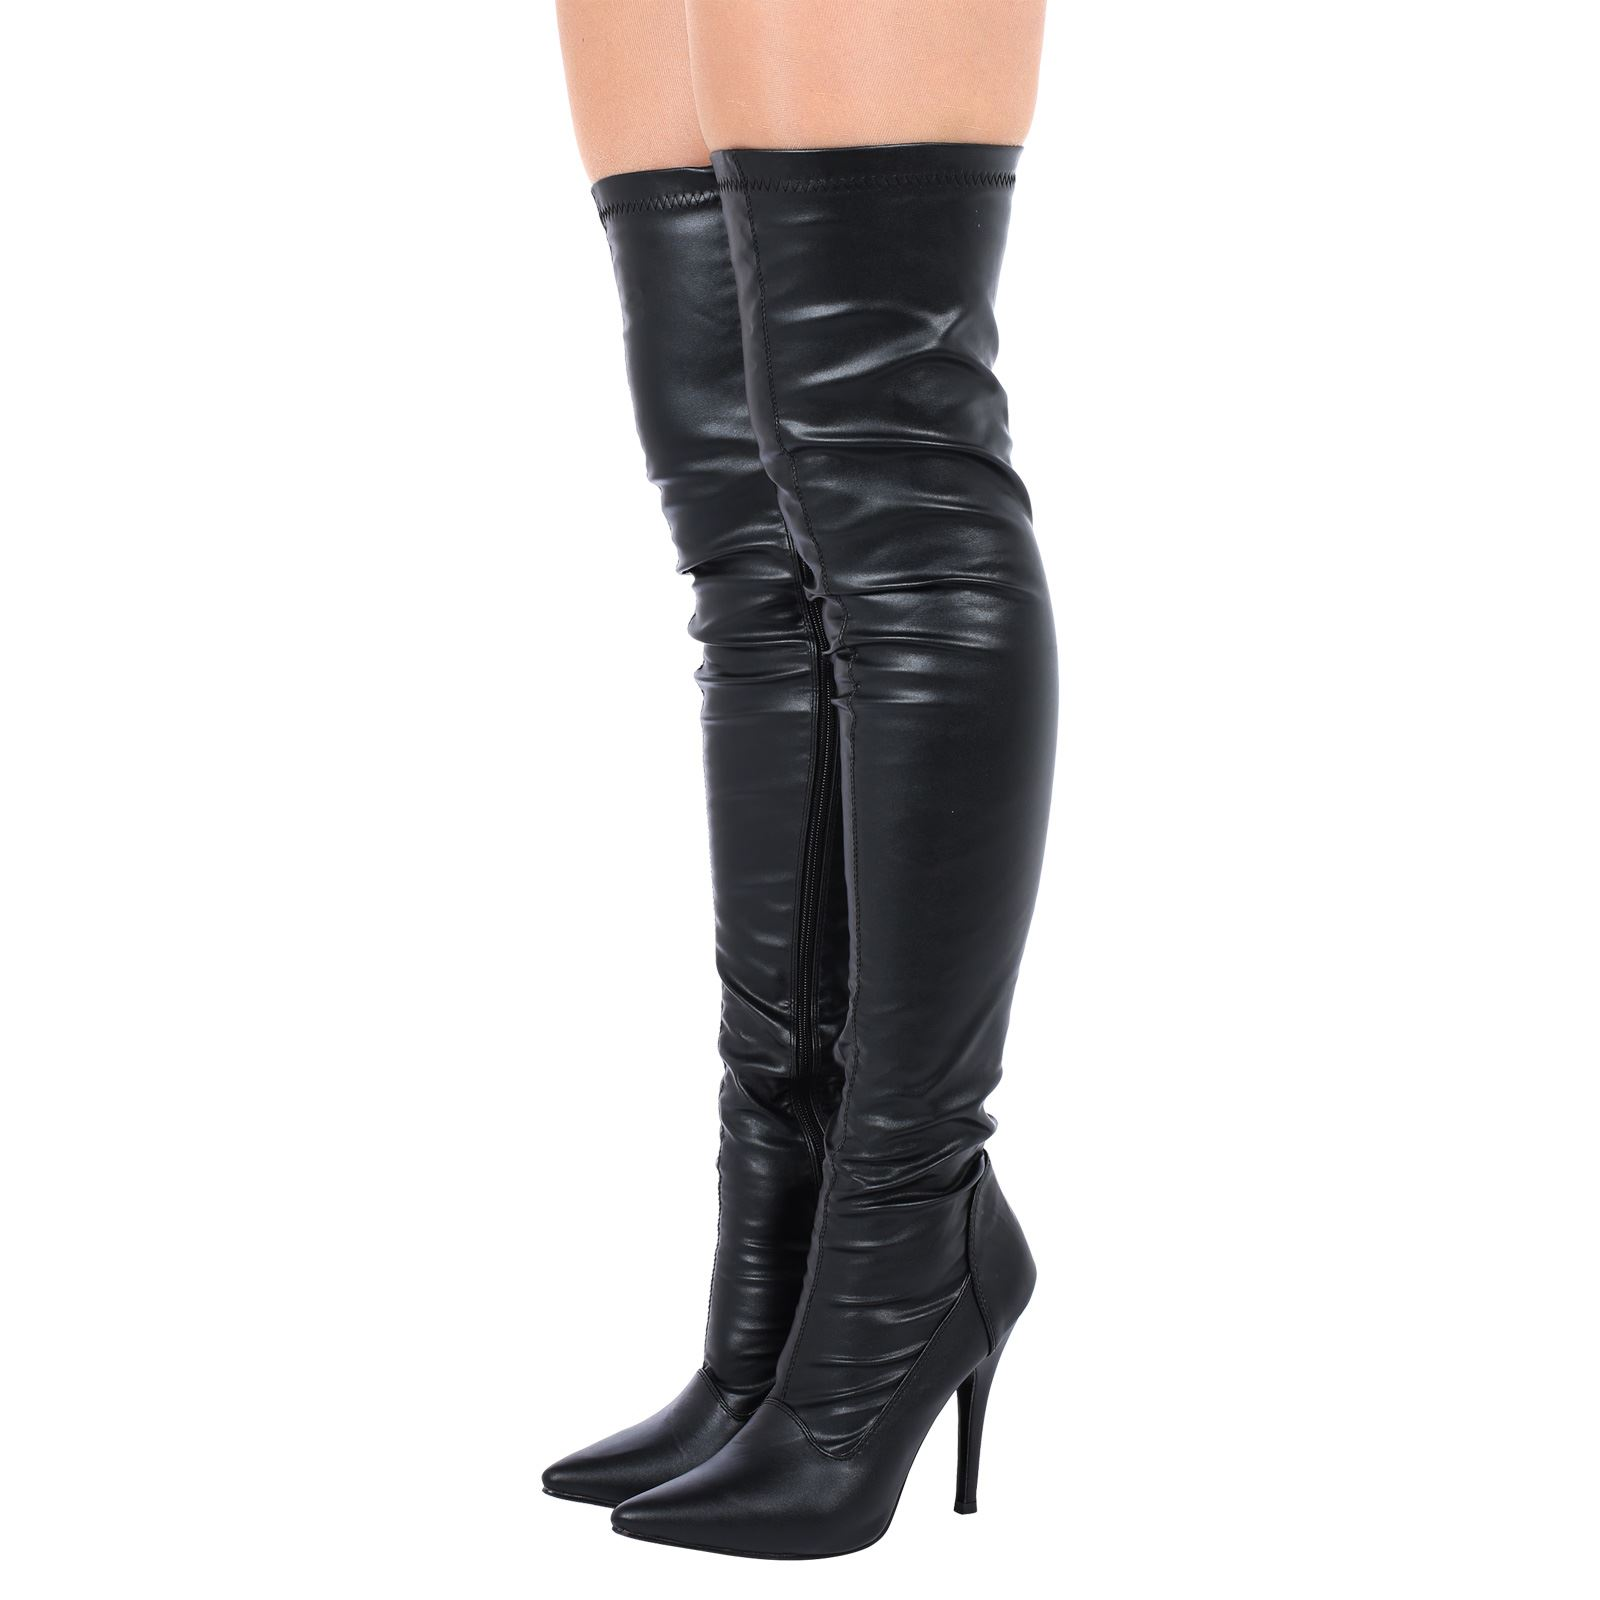 a850d14edce Womens Thigh High Boots Ladies Over The Knee Lace Up Long Low Mid Heel  Shoes See